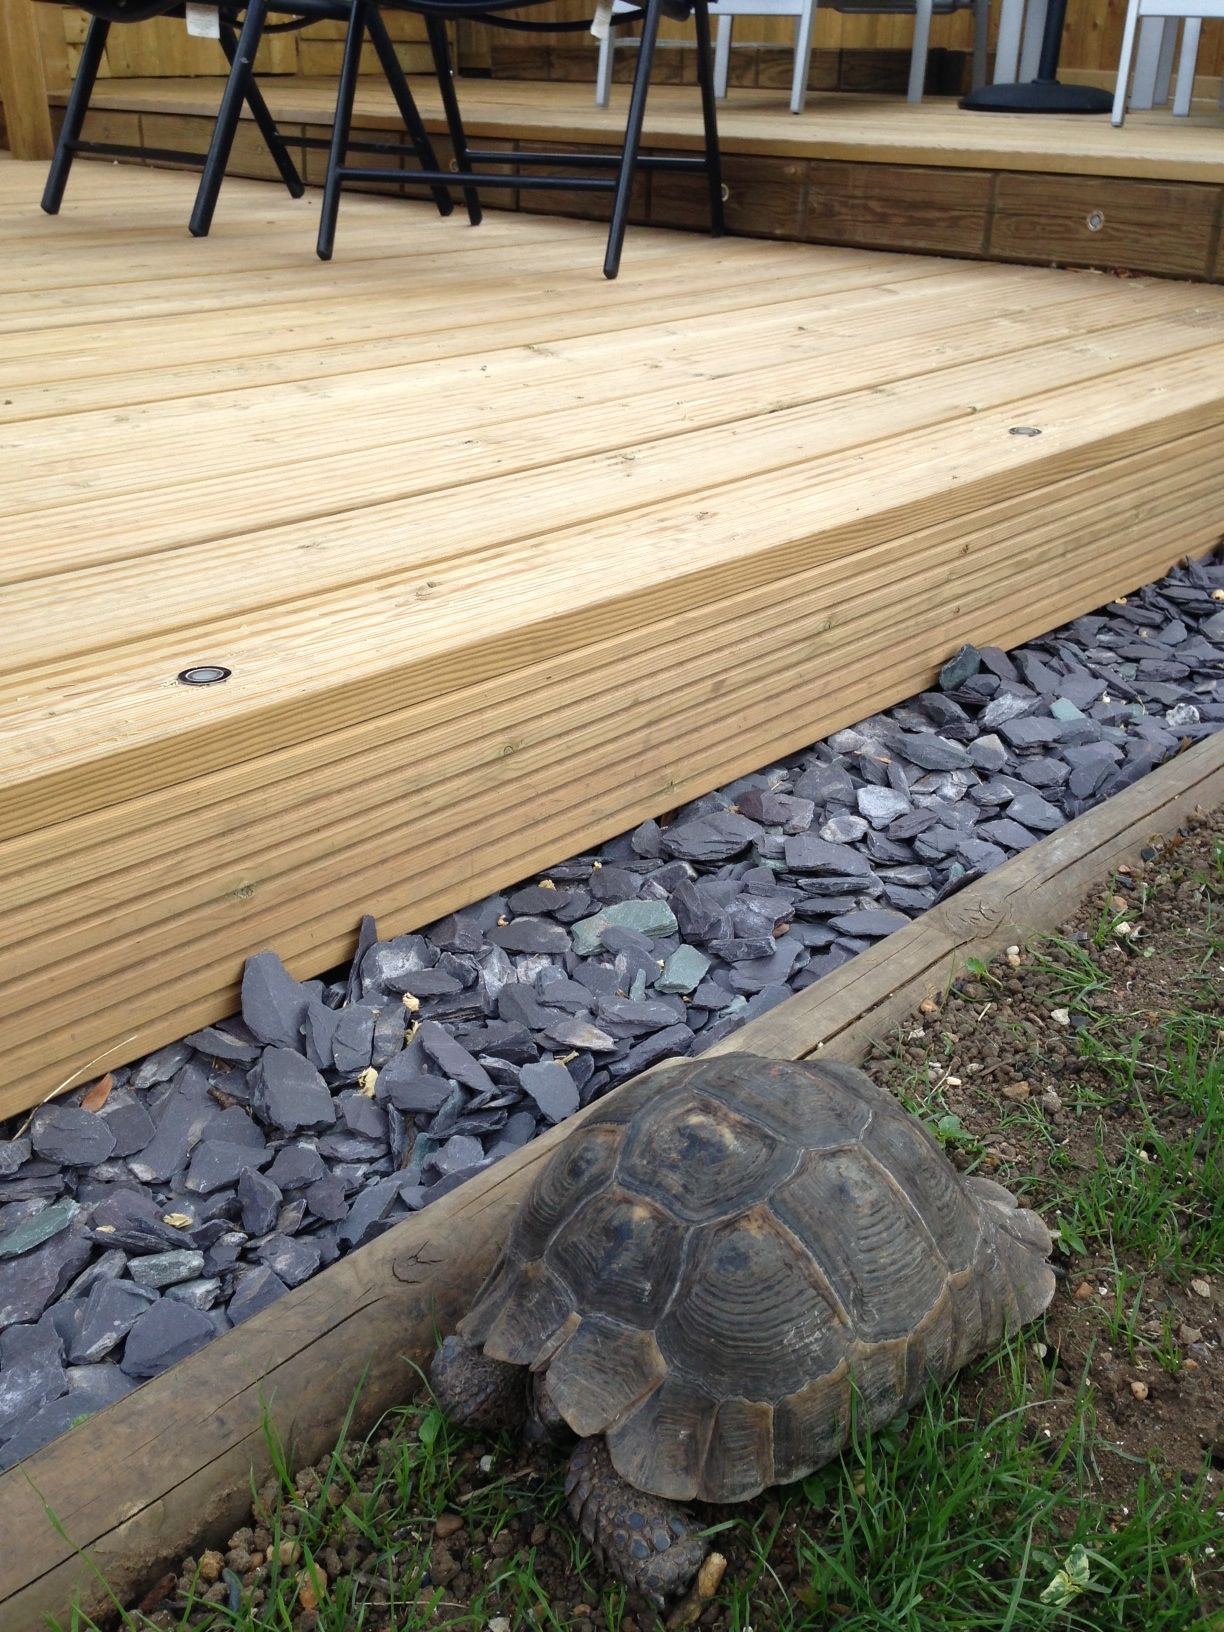 Close up Jacksons #timber #decking and Timmy the tortoise. Customer project: https://www.jacksons-fencing.co.uk/News/customer-projects/it-started-with-a-fence-5020.aspx?agid=597